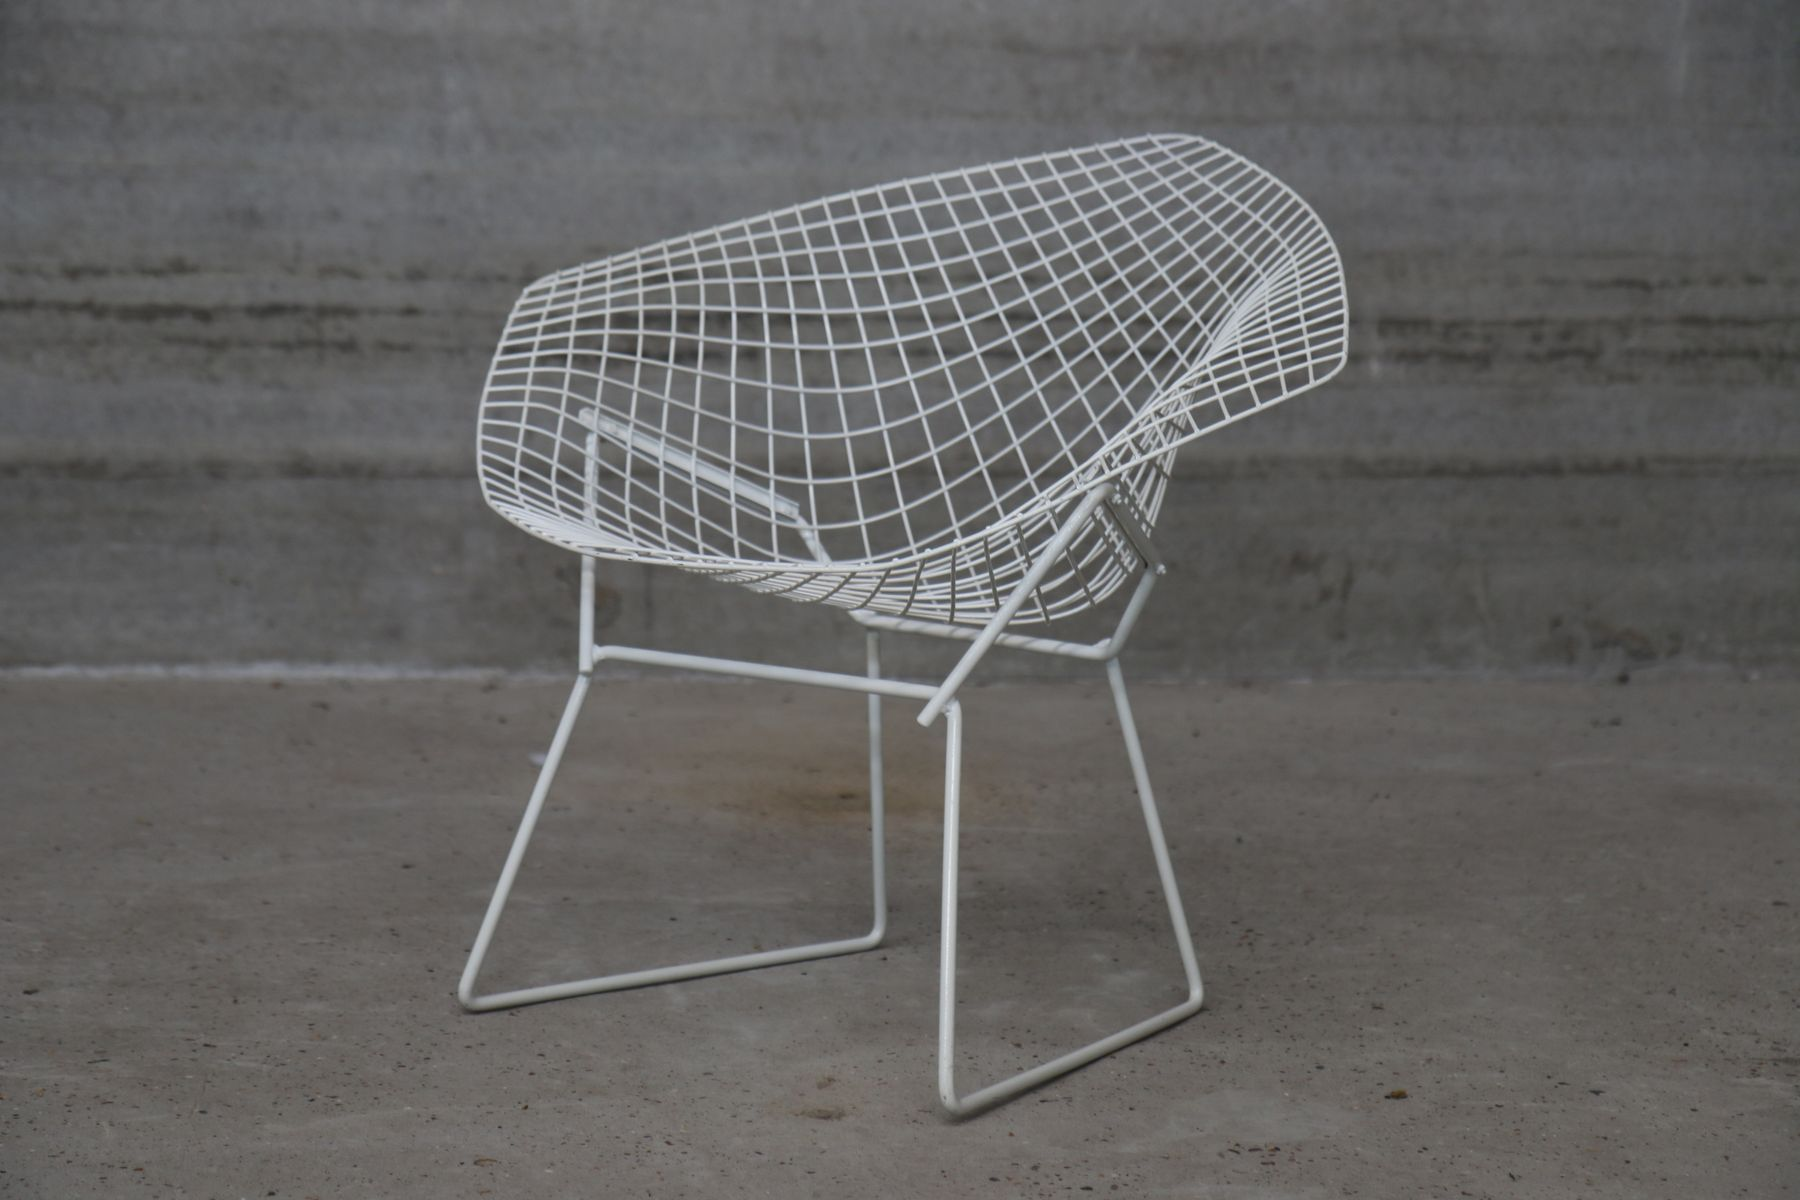 Bertoia diamond chair vintage - Vintage White Diamond Chairs By Harry Bertoia For Knoll Set Of 2